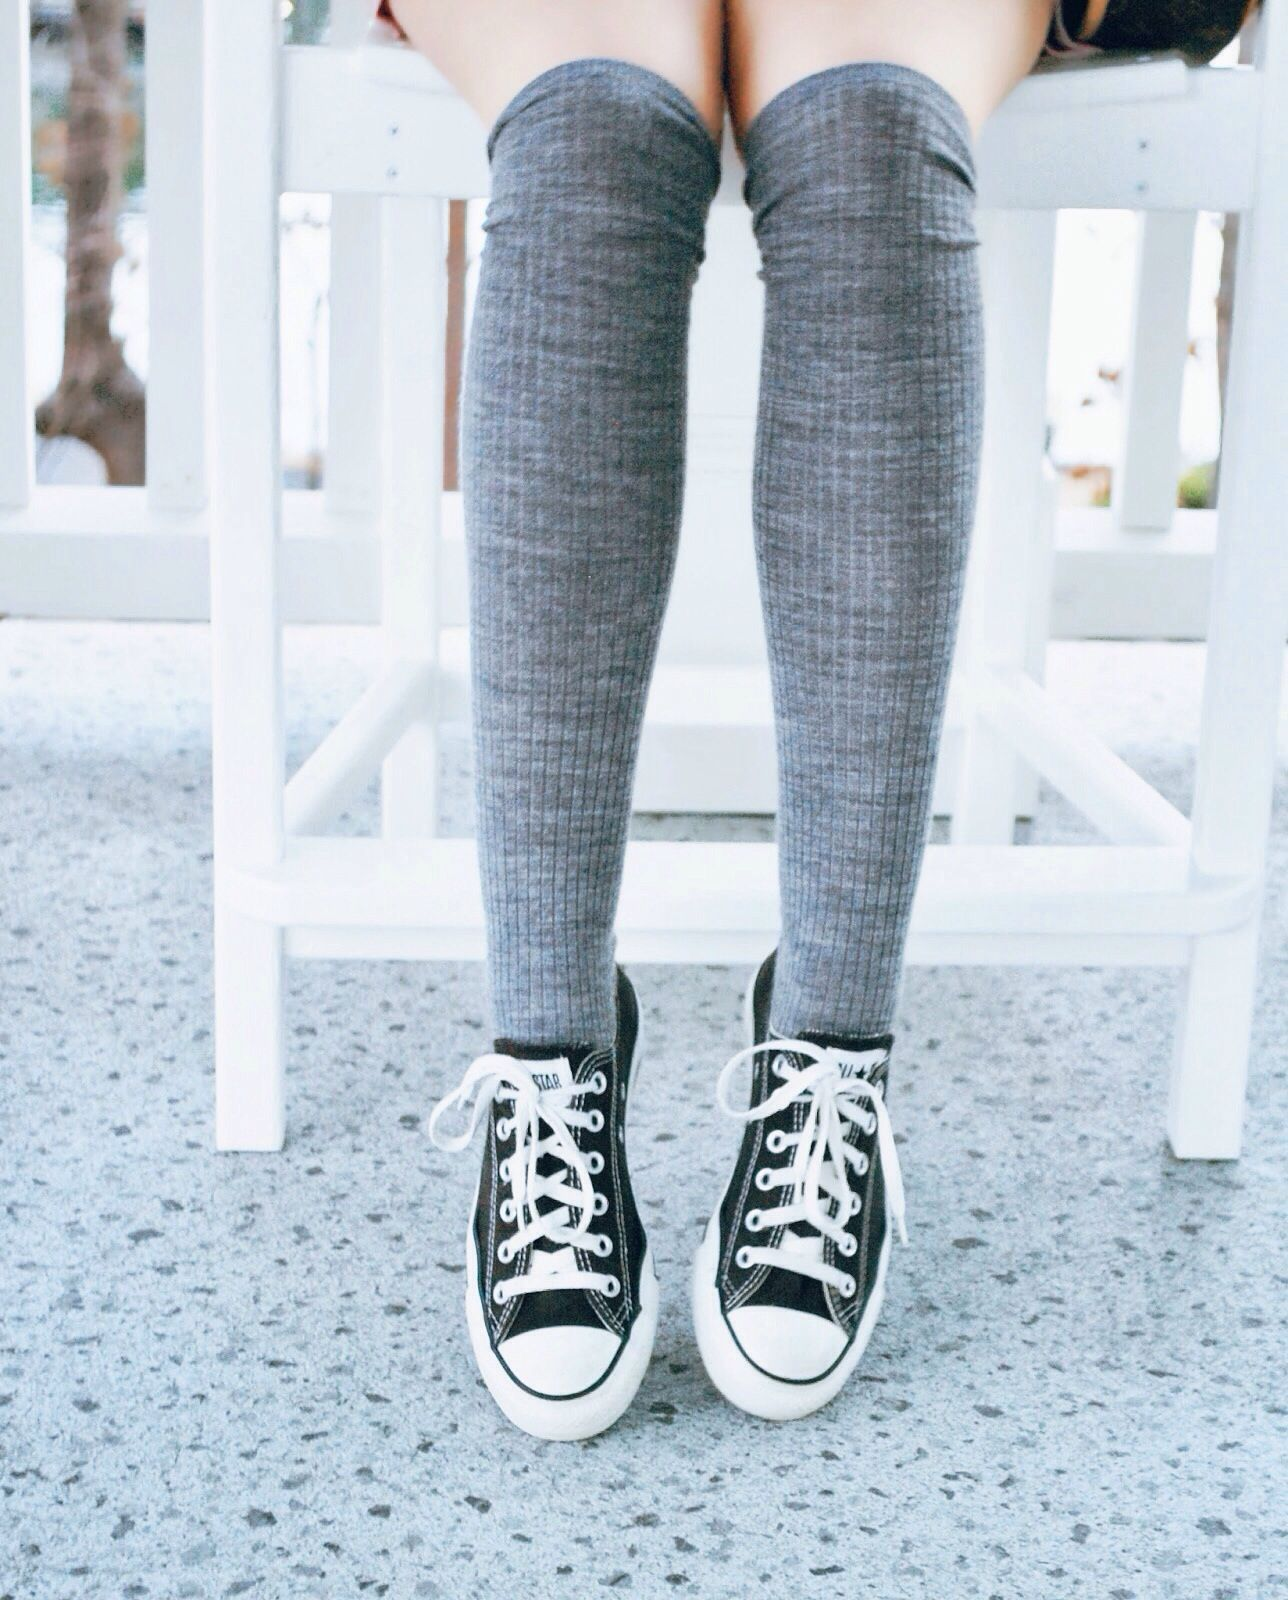 a076cfcf0cde59 Converse and knee highs anyone